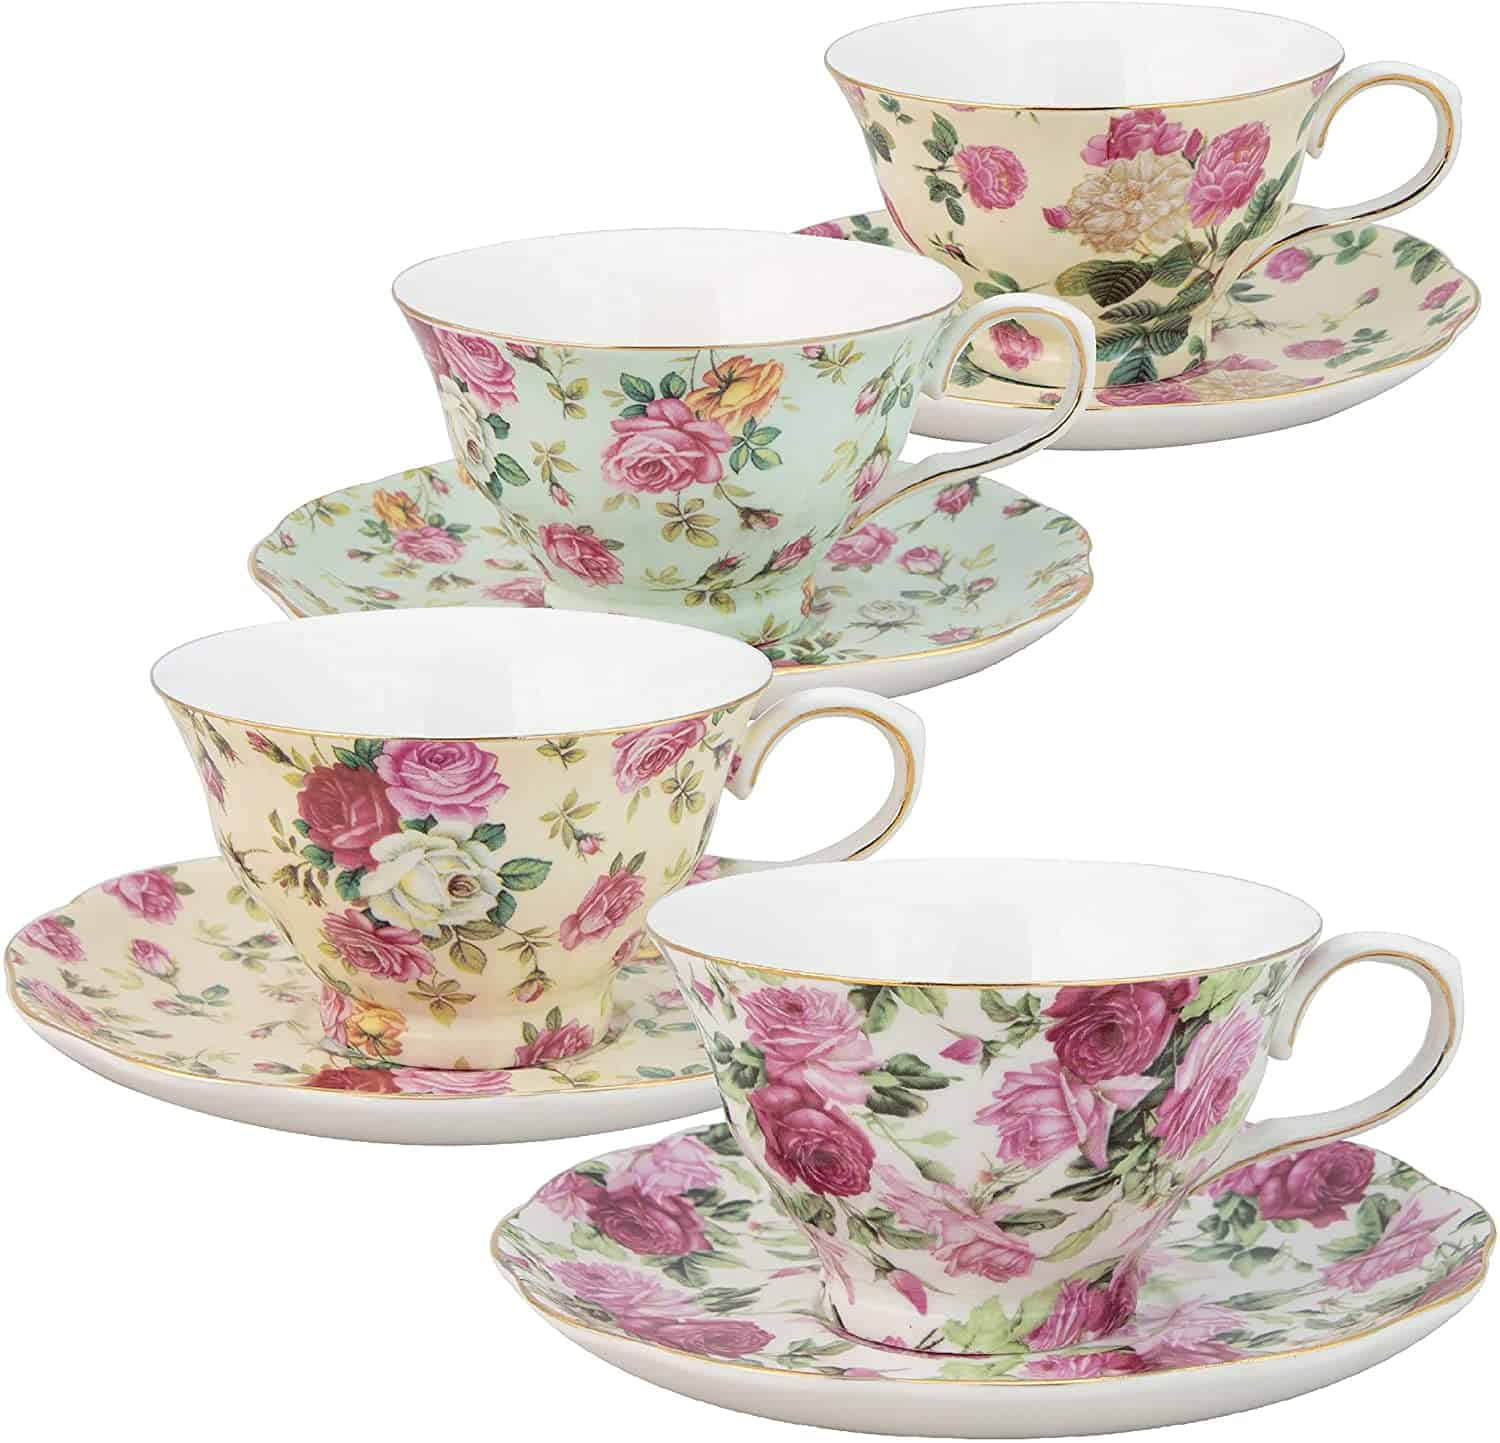 Gracie China By Coastline Imports Rose Chintz 8 Ounce Porcelain Tea Cup And Saucer